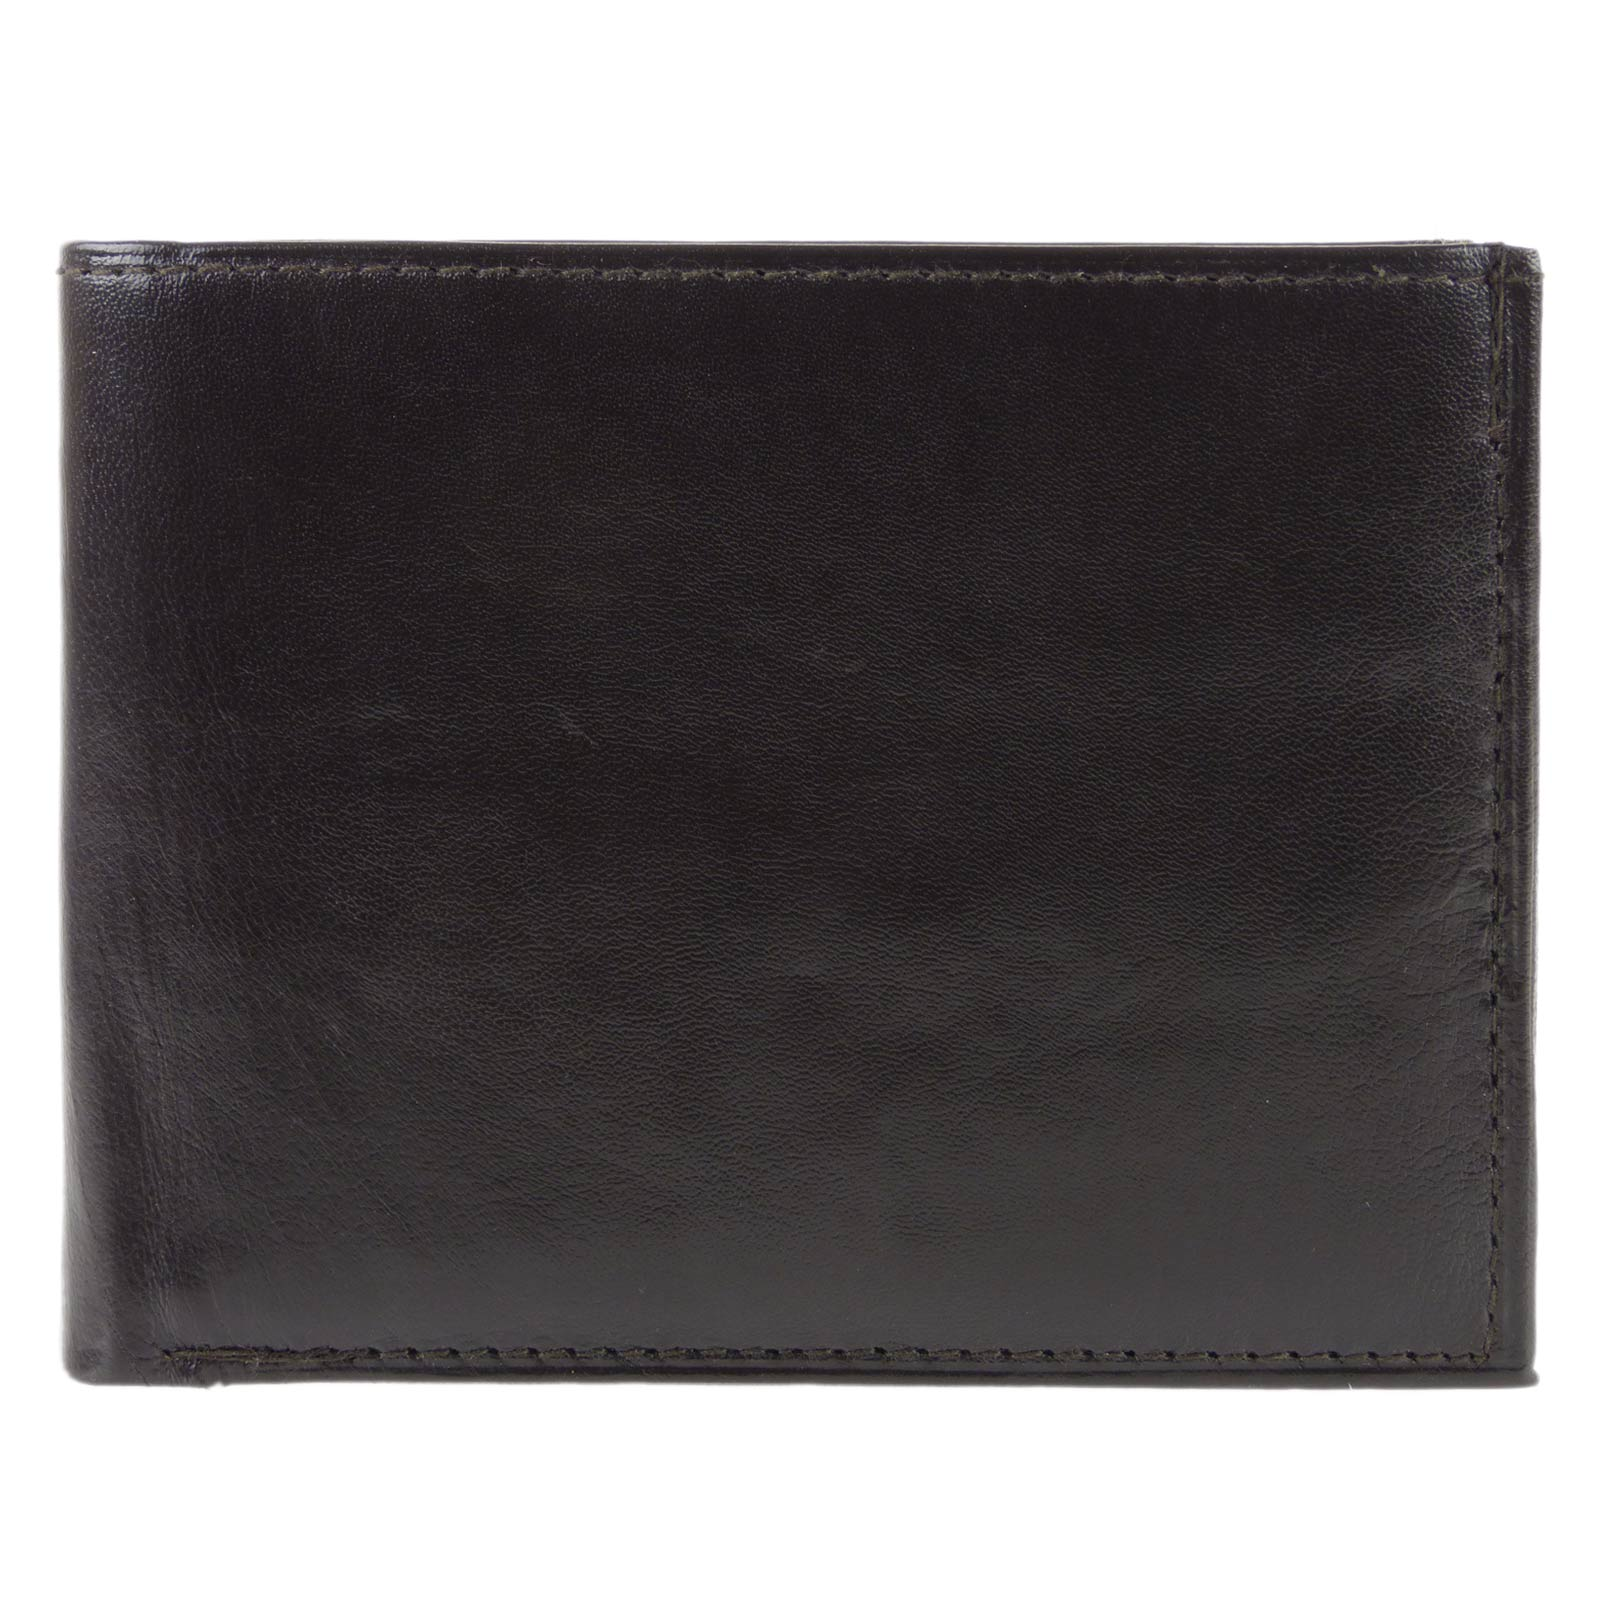 Mens-Quality-Soft-Nappa-LEATHER-Bi-Fold-Wallet-by-Oakridge thumbnail 9